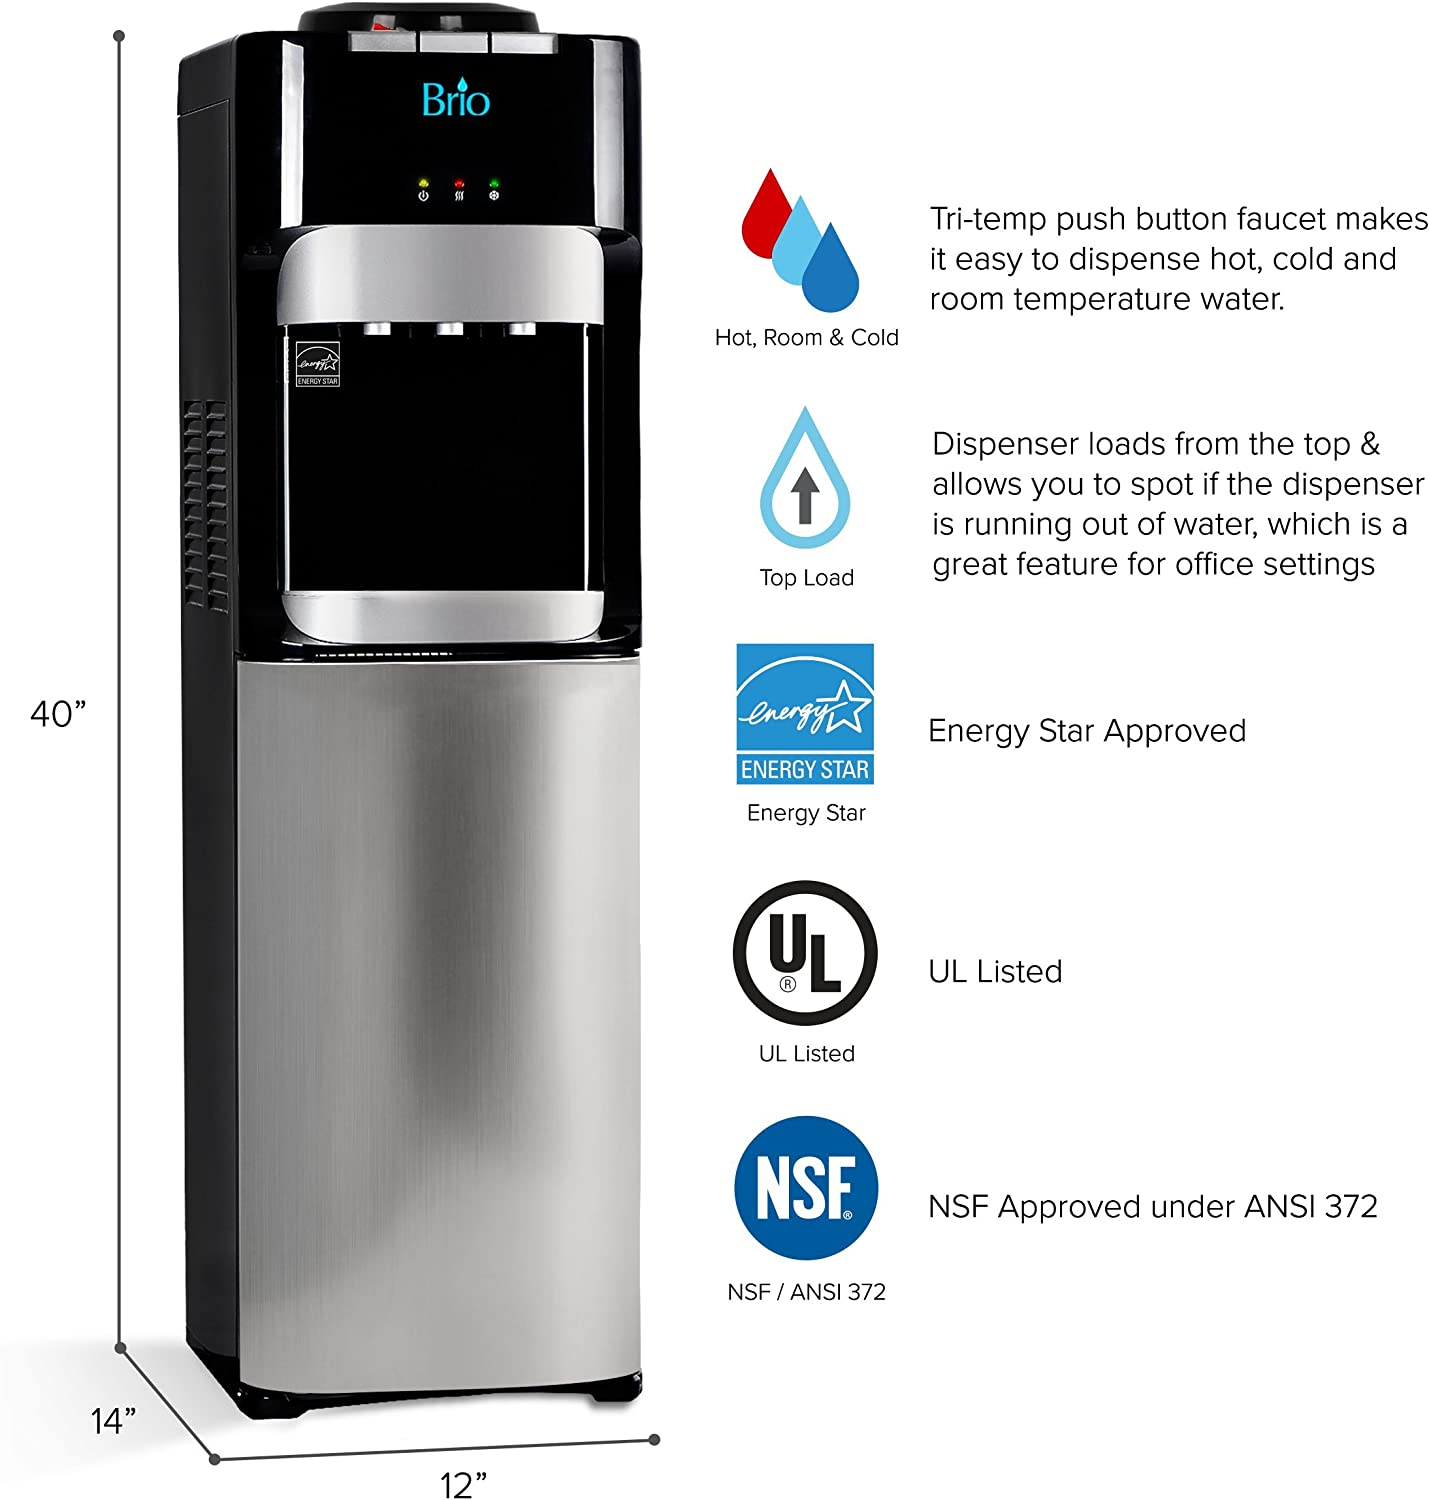 Brio CLTL420 Free-Standing Water Dispenser Reviews